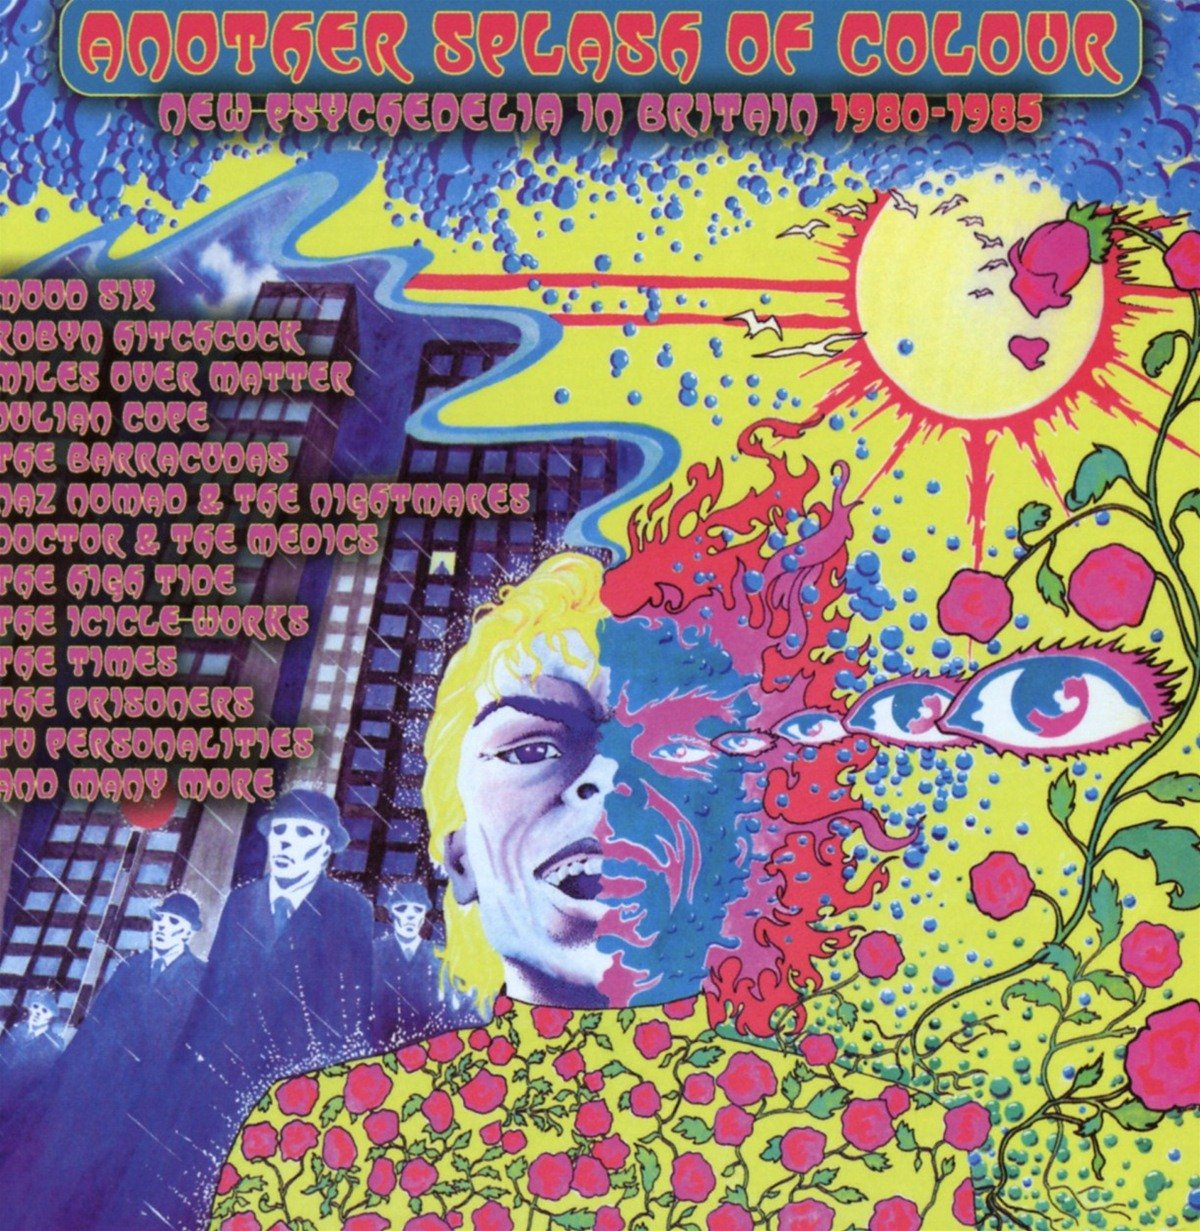 VA - Another Splash Of Colour New Psychedelia In Britain 1980 - 1985 - 3CD - FLAC - 2016 - NBFLAC Download